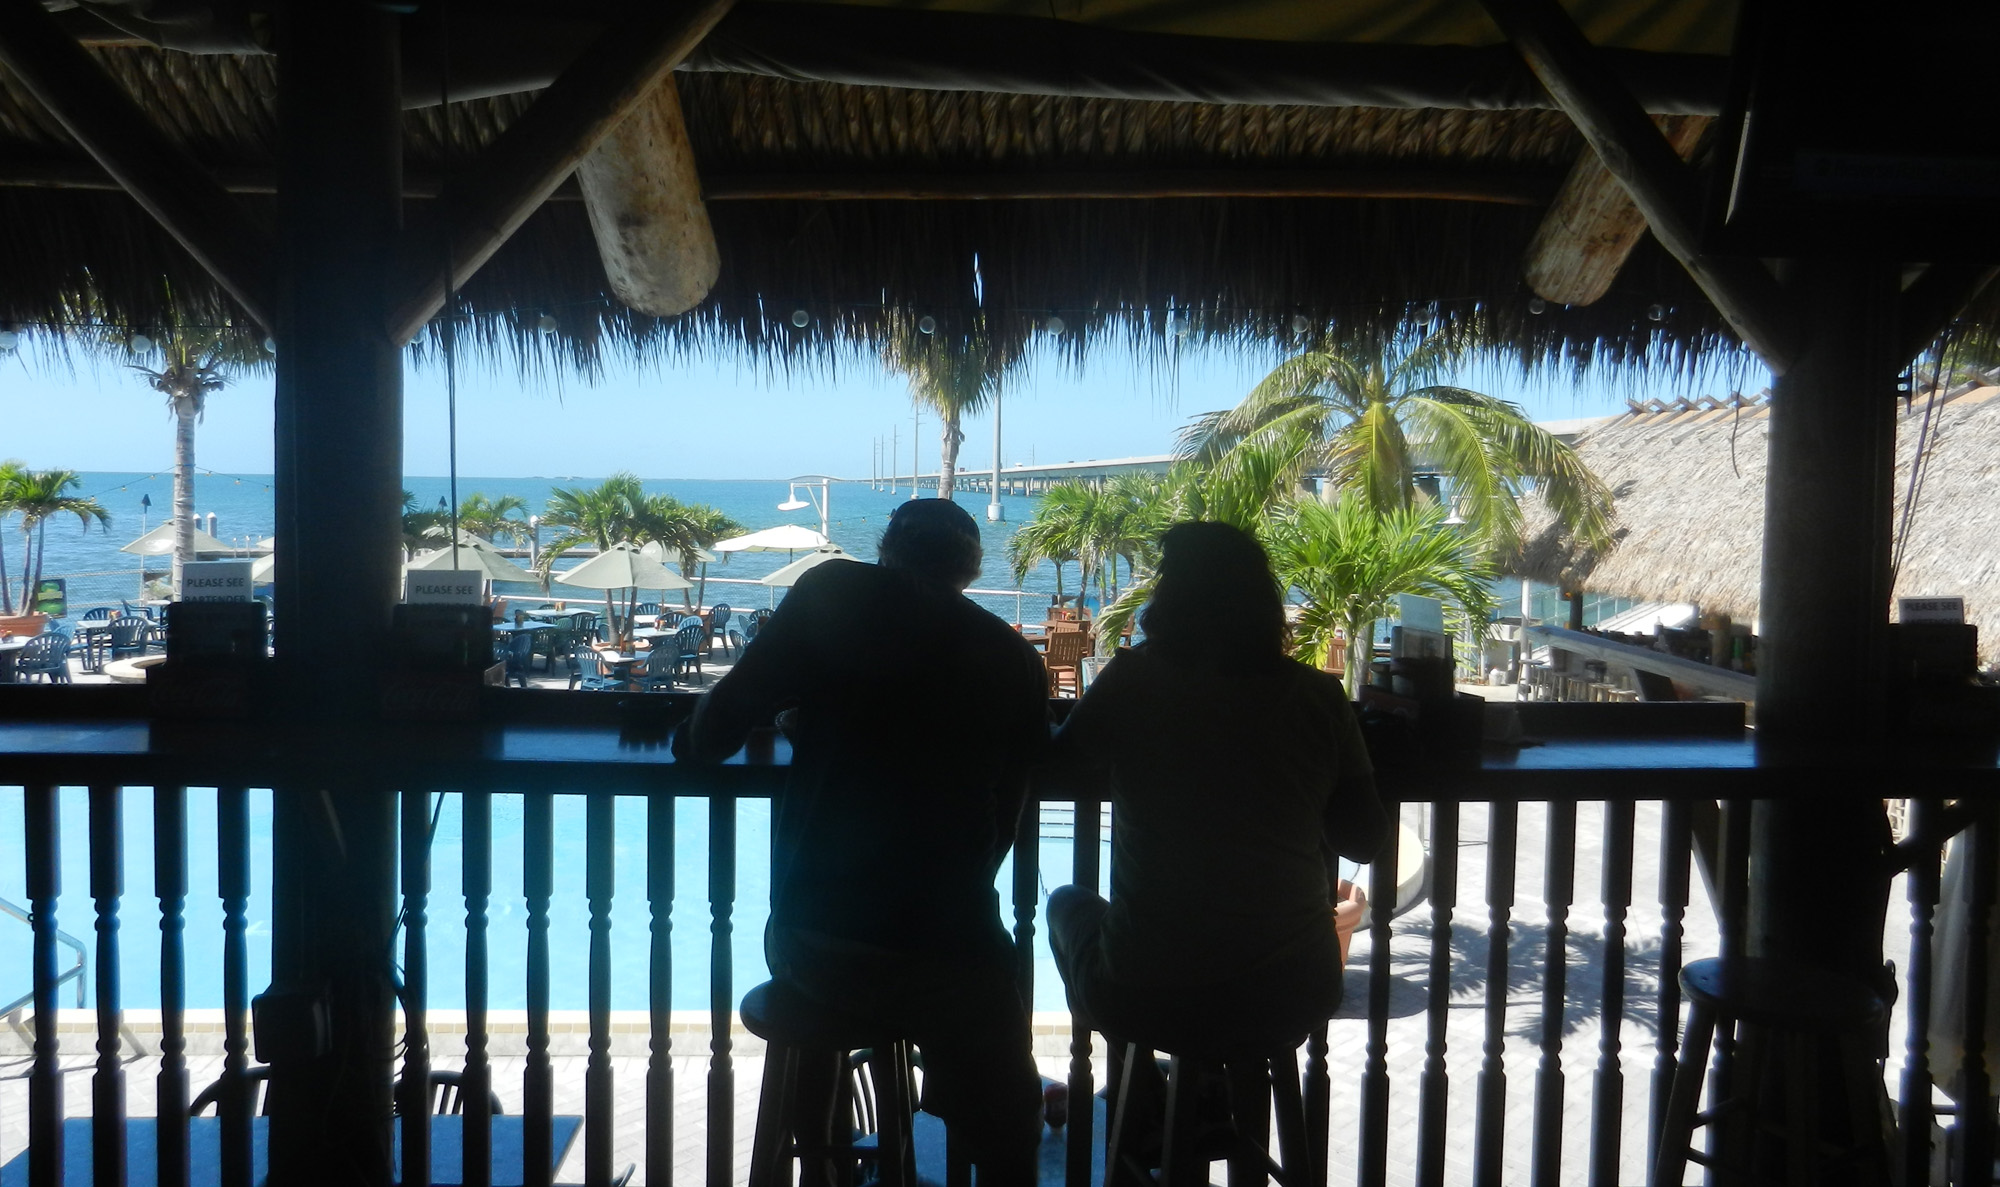 A favorite among things to do in Marathon: Having a beer at a tiki bar at the Sunset Grille & Raw Bar. (Photo: David Blasco)